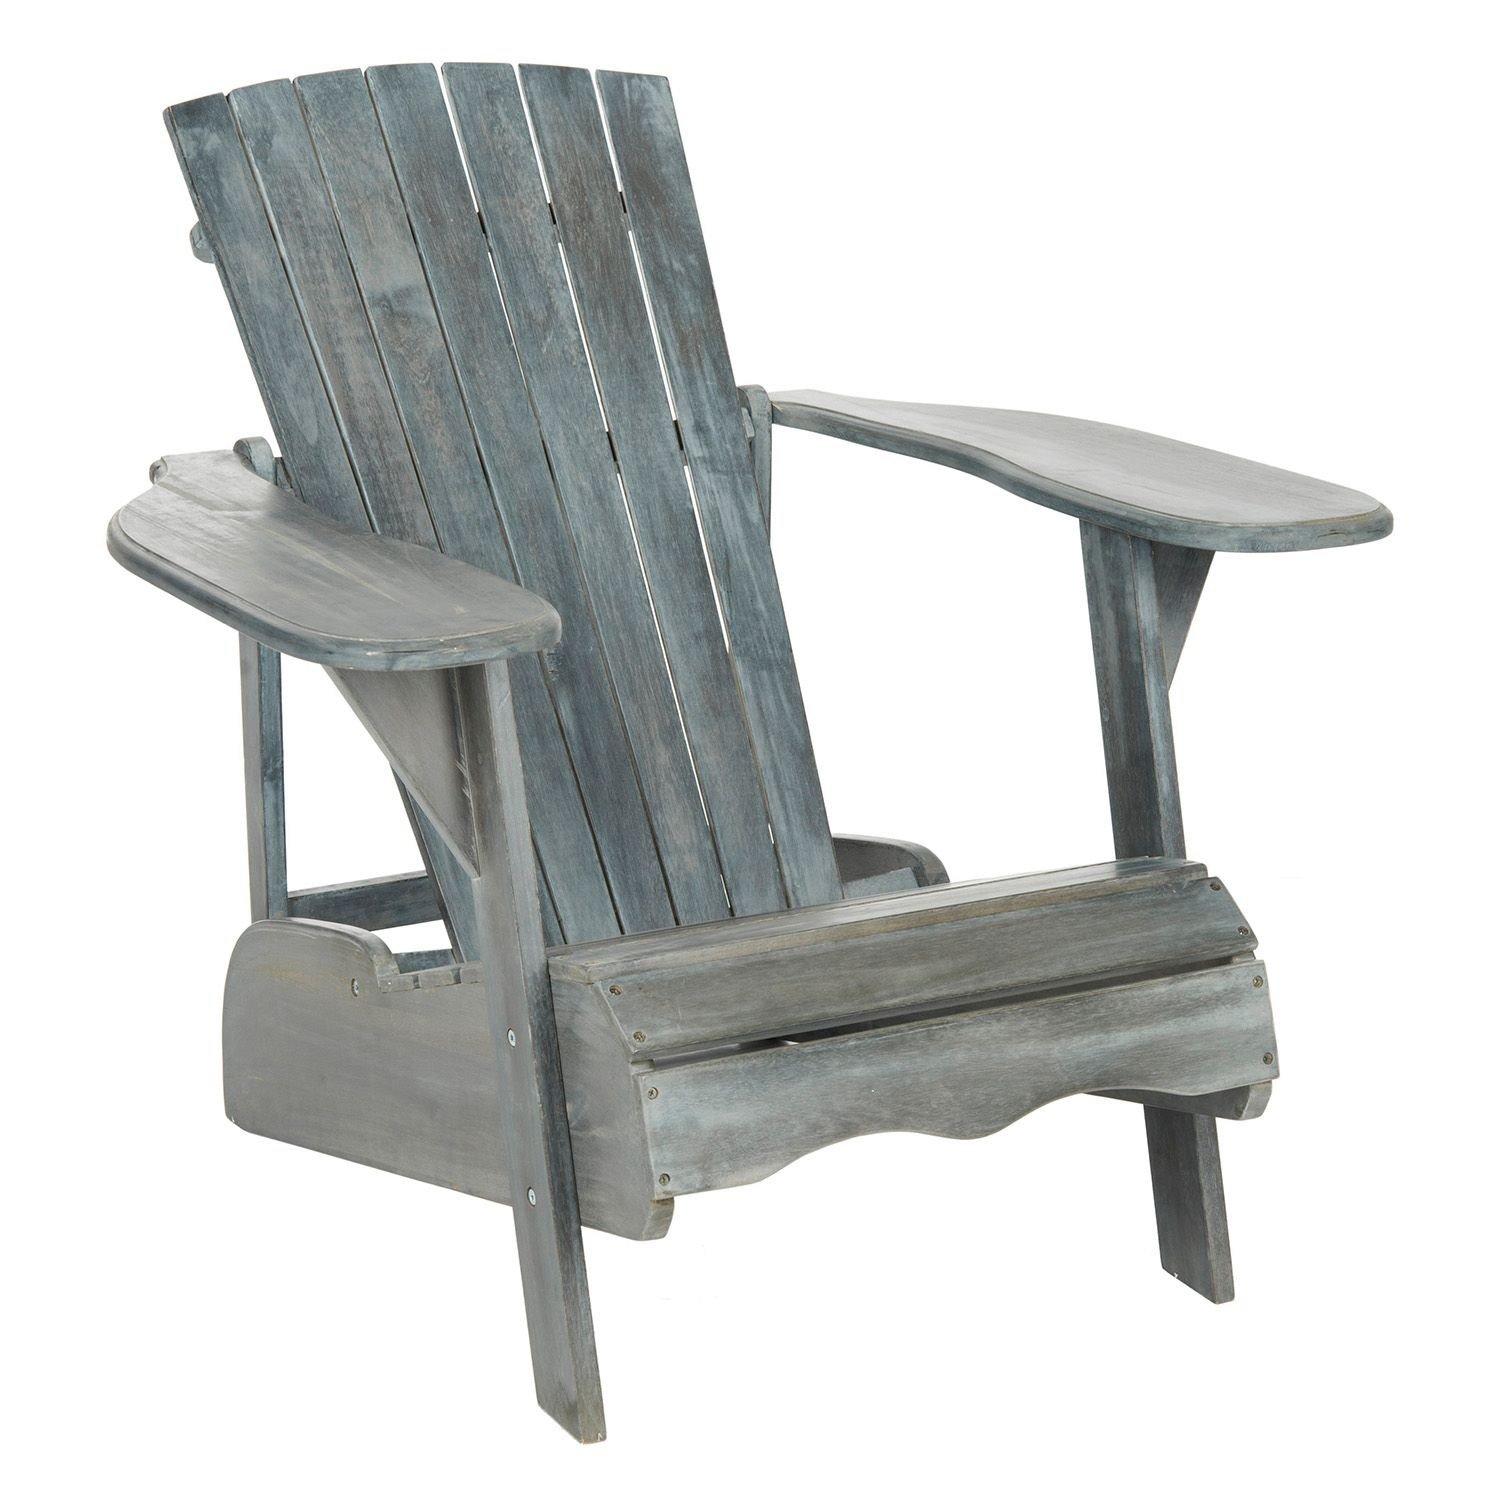 Original  sc 1 st  Kohlu0027s & Safavieh Vista Indoor / Outdoor Adirondack Chair